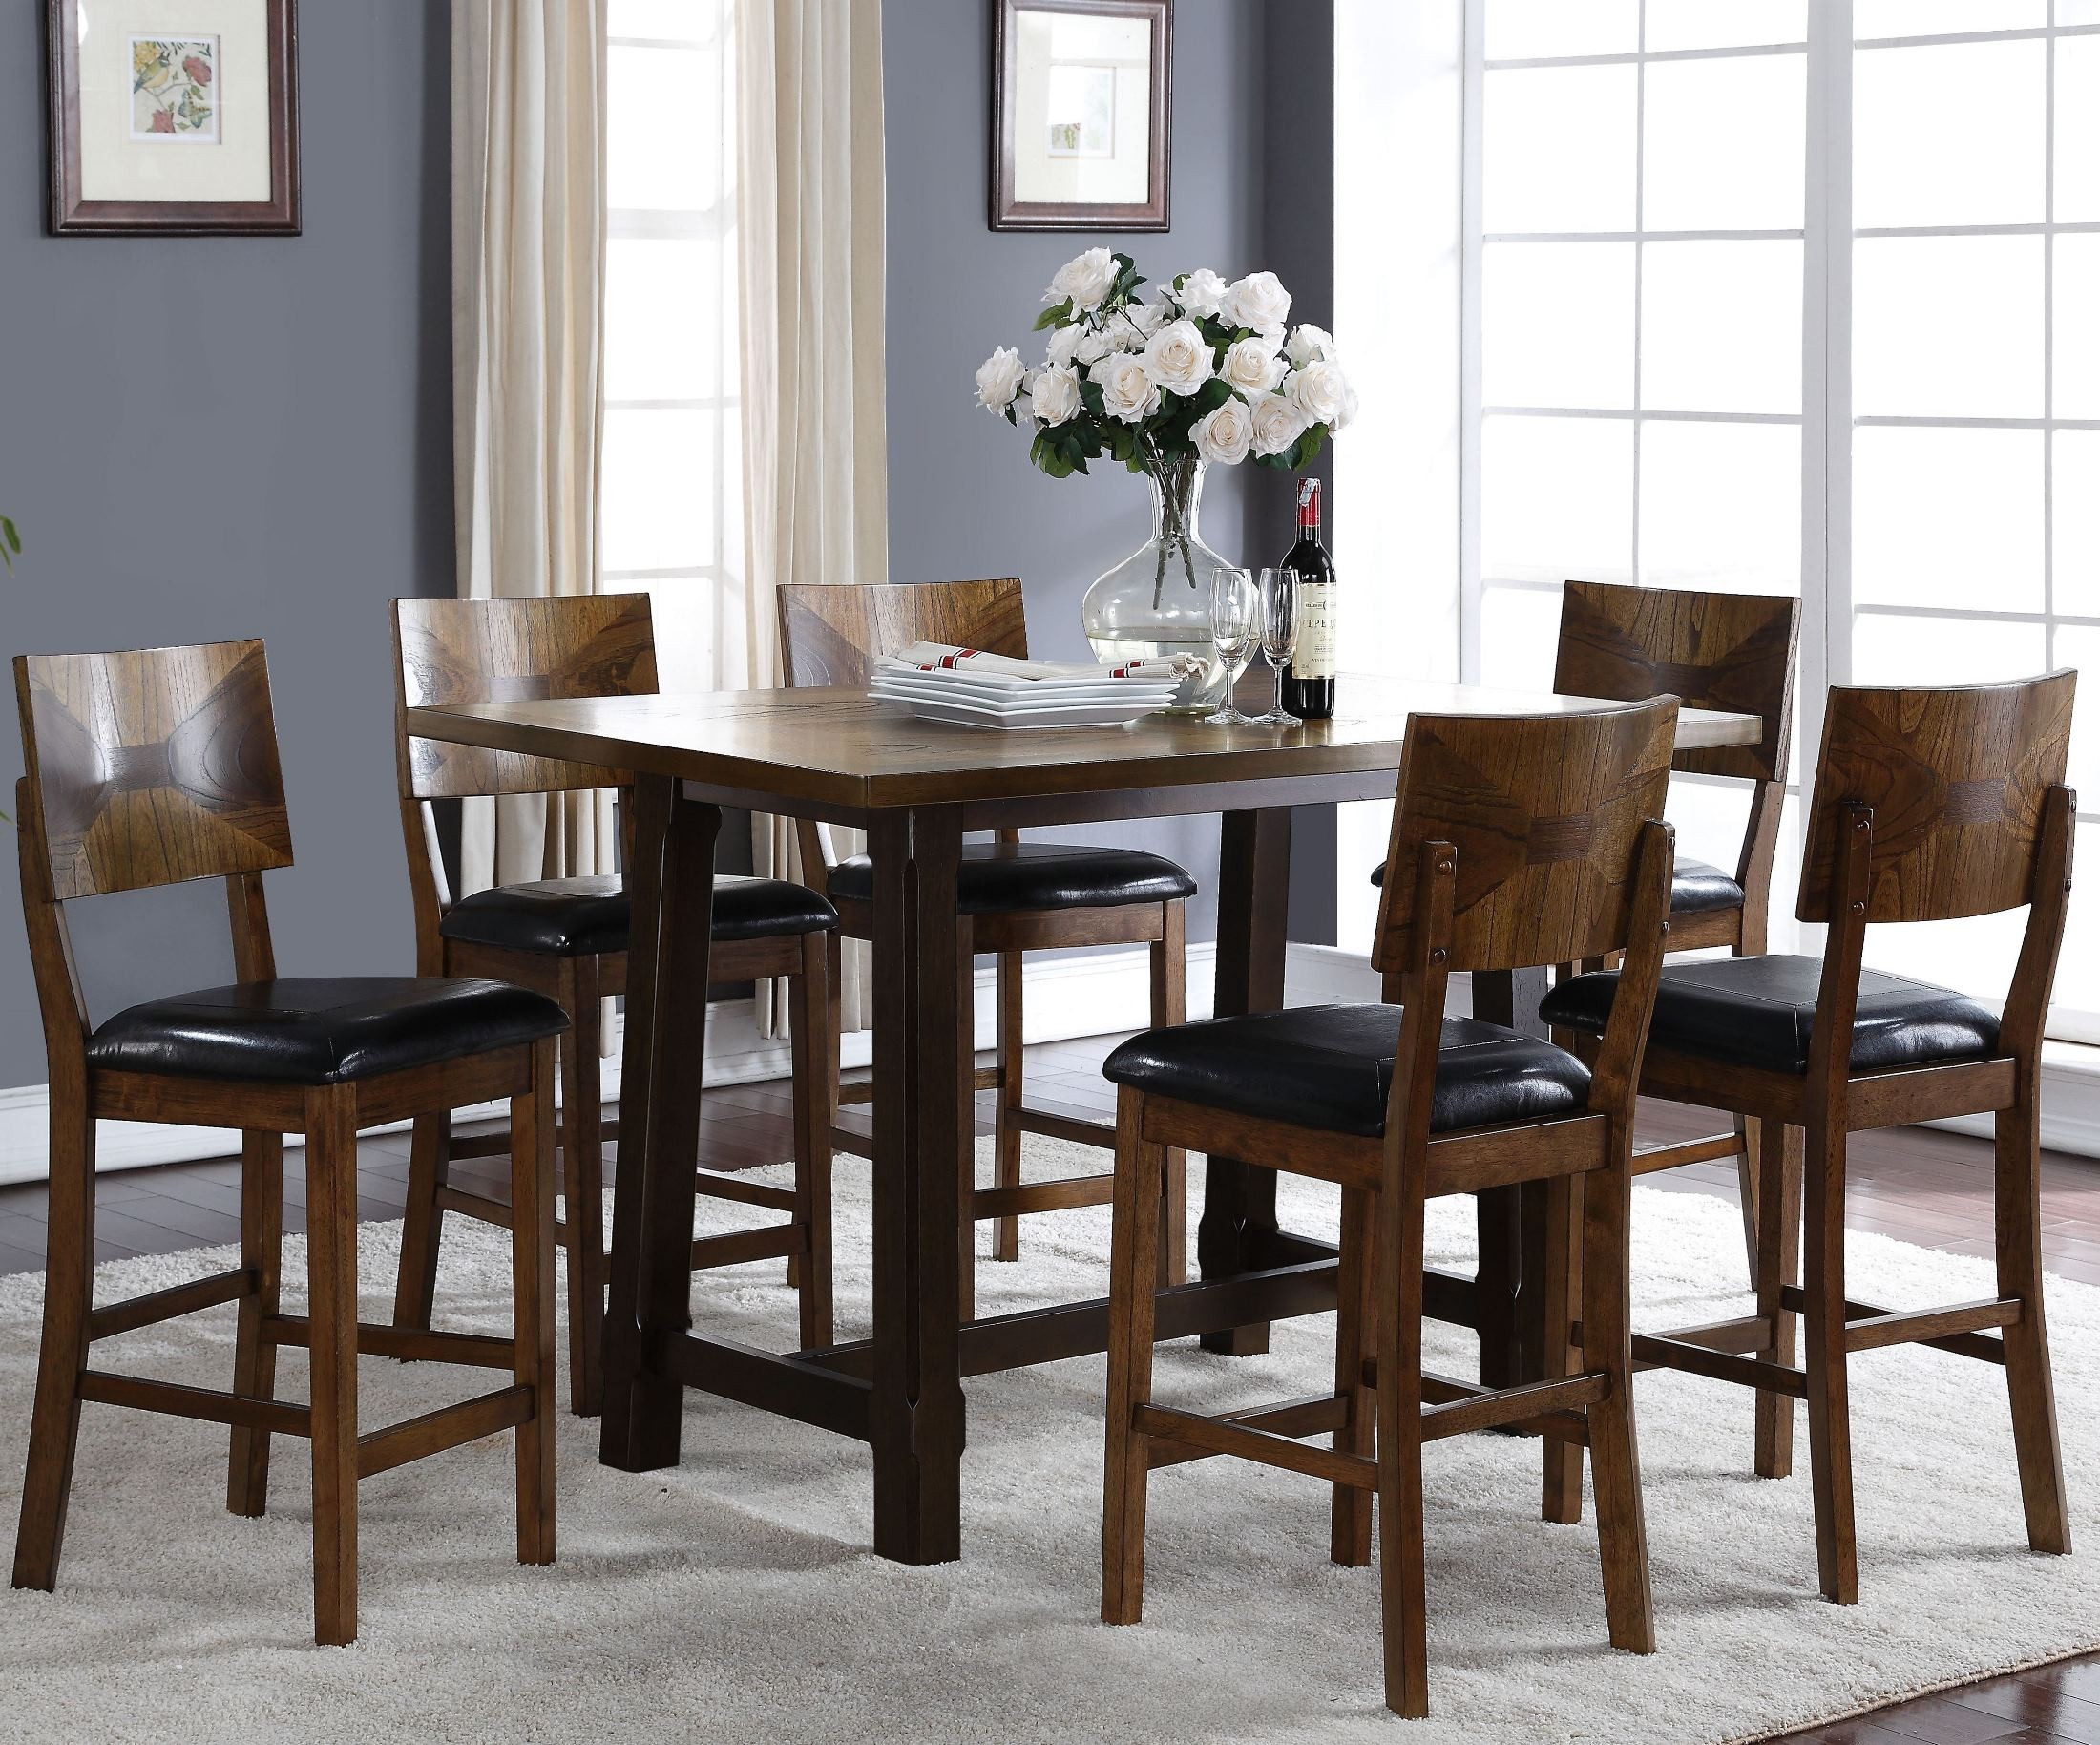 gillian two tone counter height dining room set d228 12 new classics. Black Bedroom Furniture Sets. Home Design Ideas